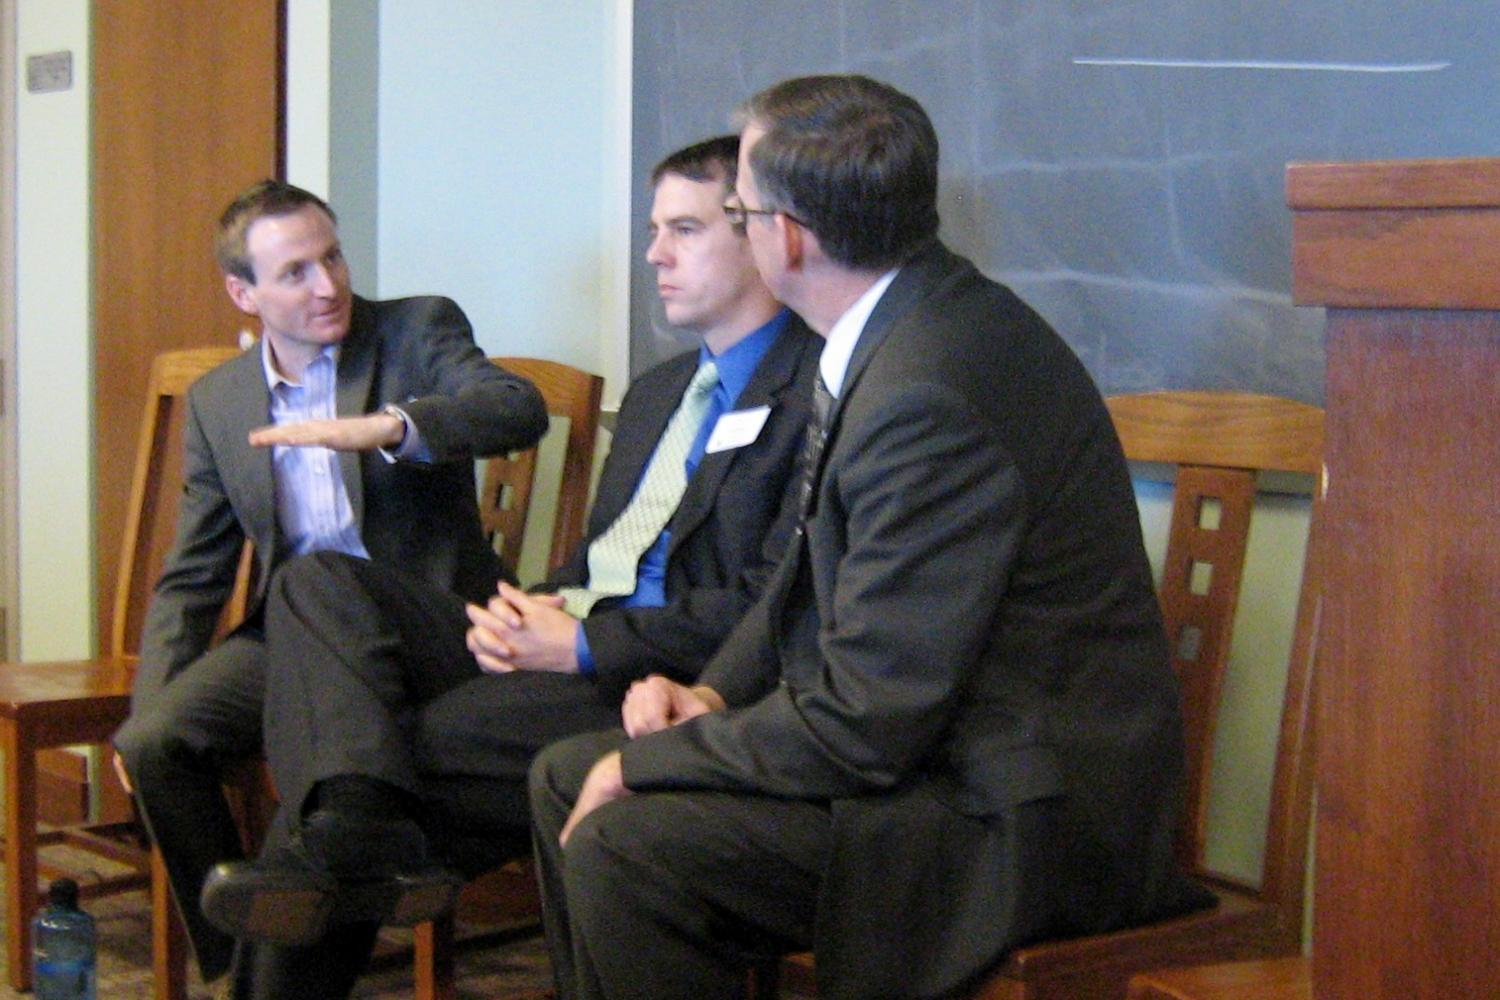 Doyle Baker (4th Judicial District DA's Office), Thom LeDoux (11th Judicial District DA's Office) and Luke McConnell (Colorado Public Defender's Office) speak at the Criminal Law Panel.